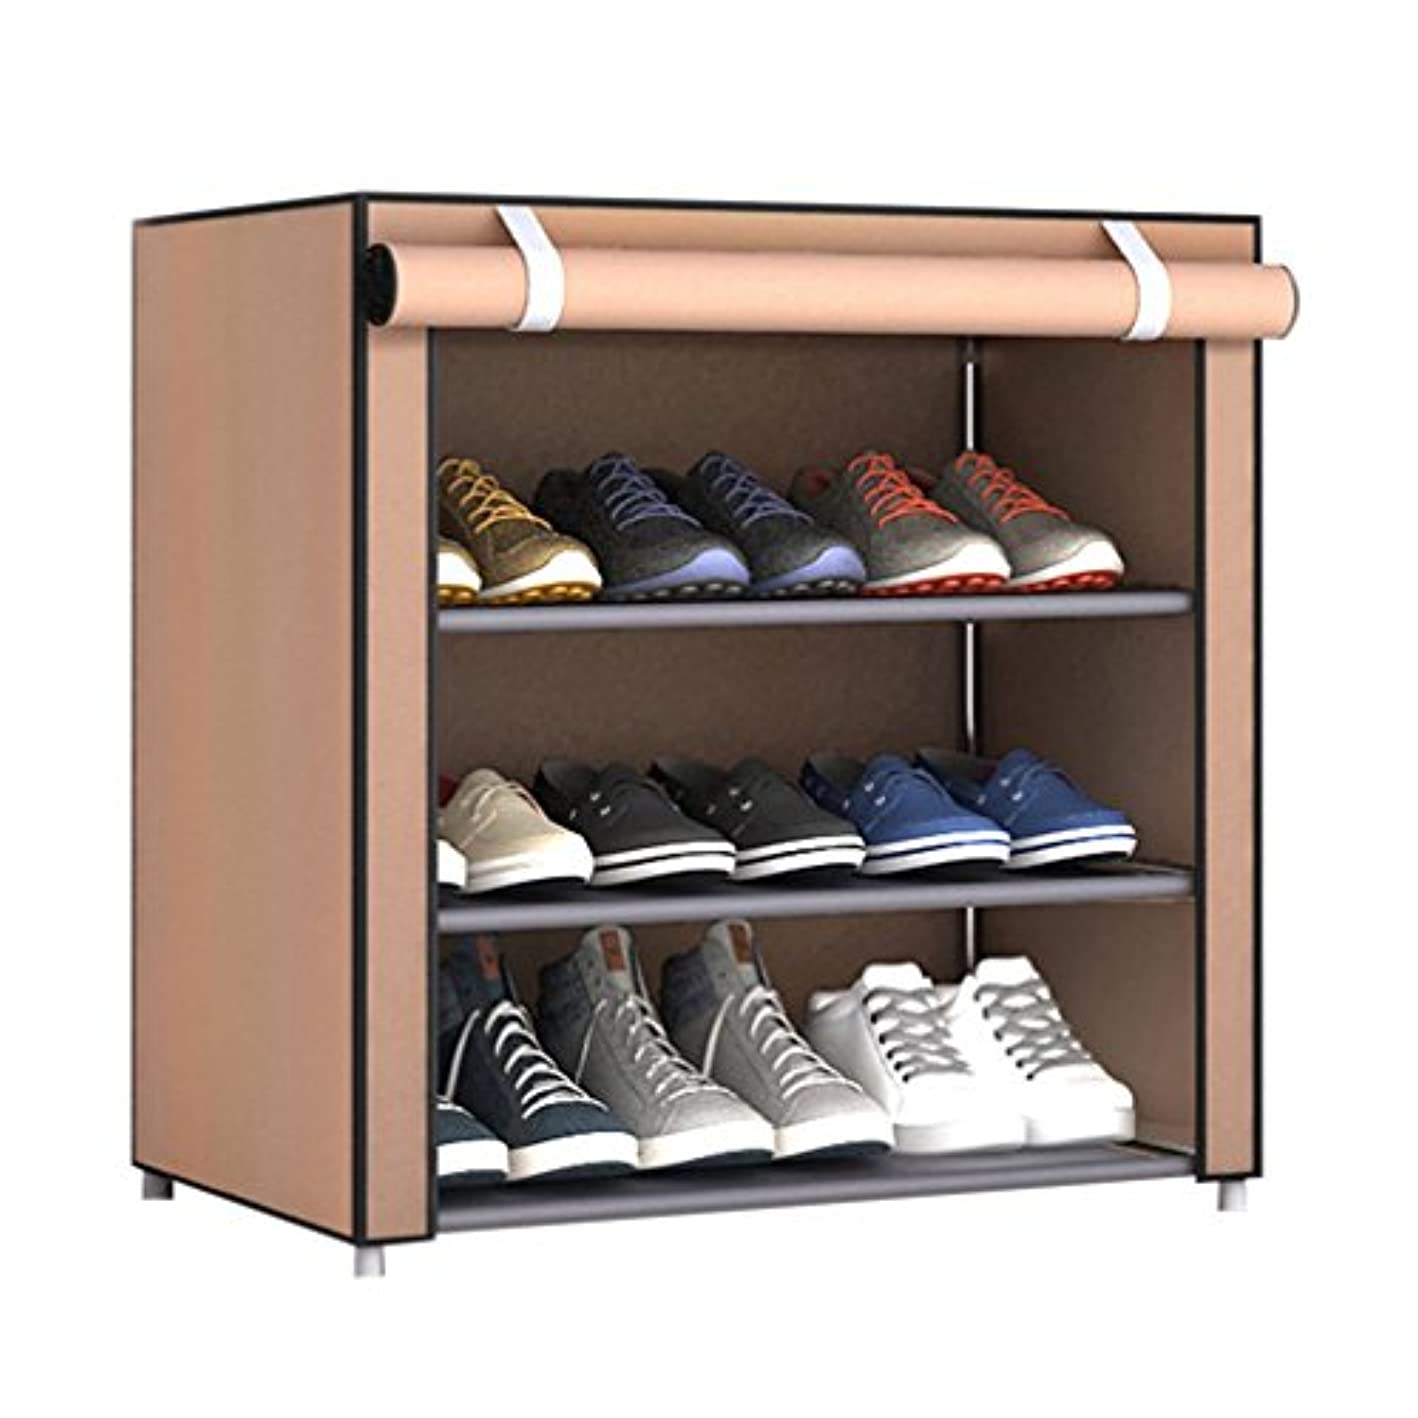 Nicedeal Non-Woven Fabric Shoes Rack Shoes Organizer Bedroom Dormitory Shoe Racks Storage Box